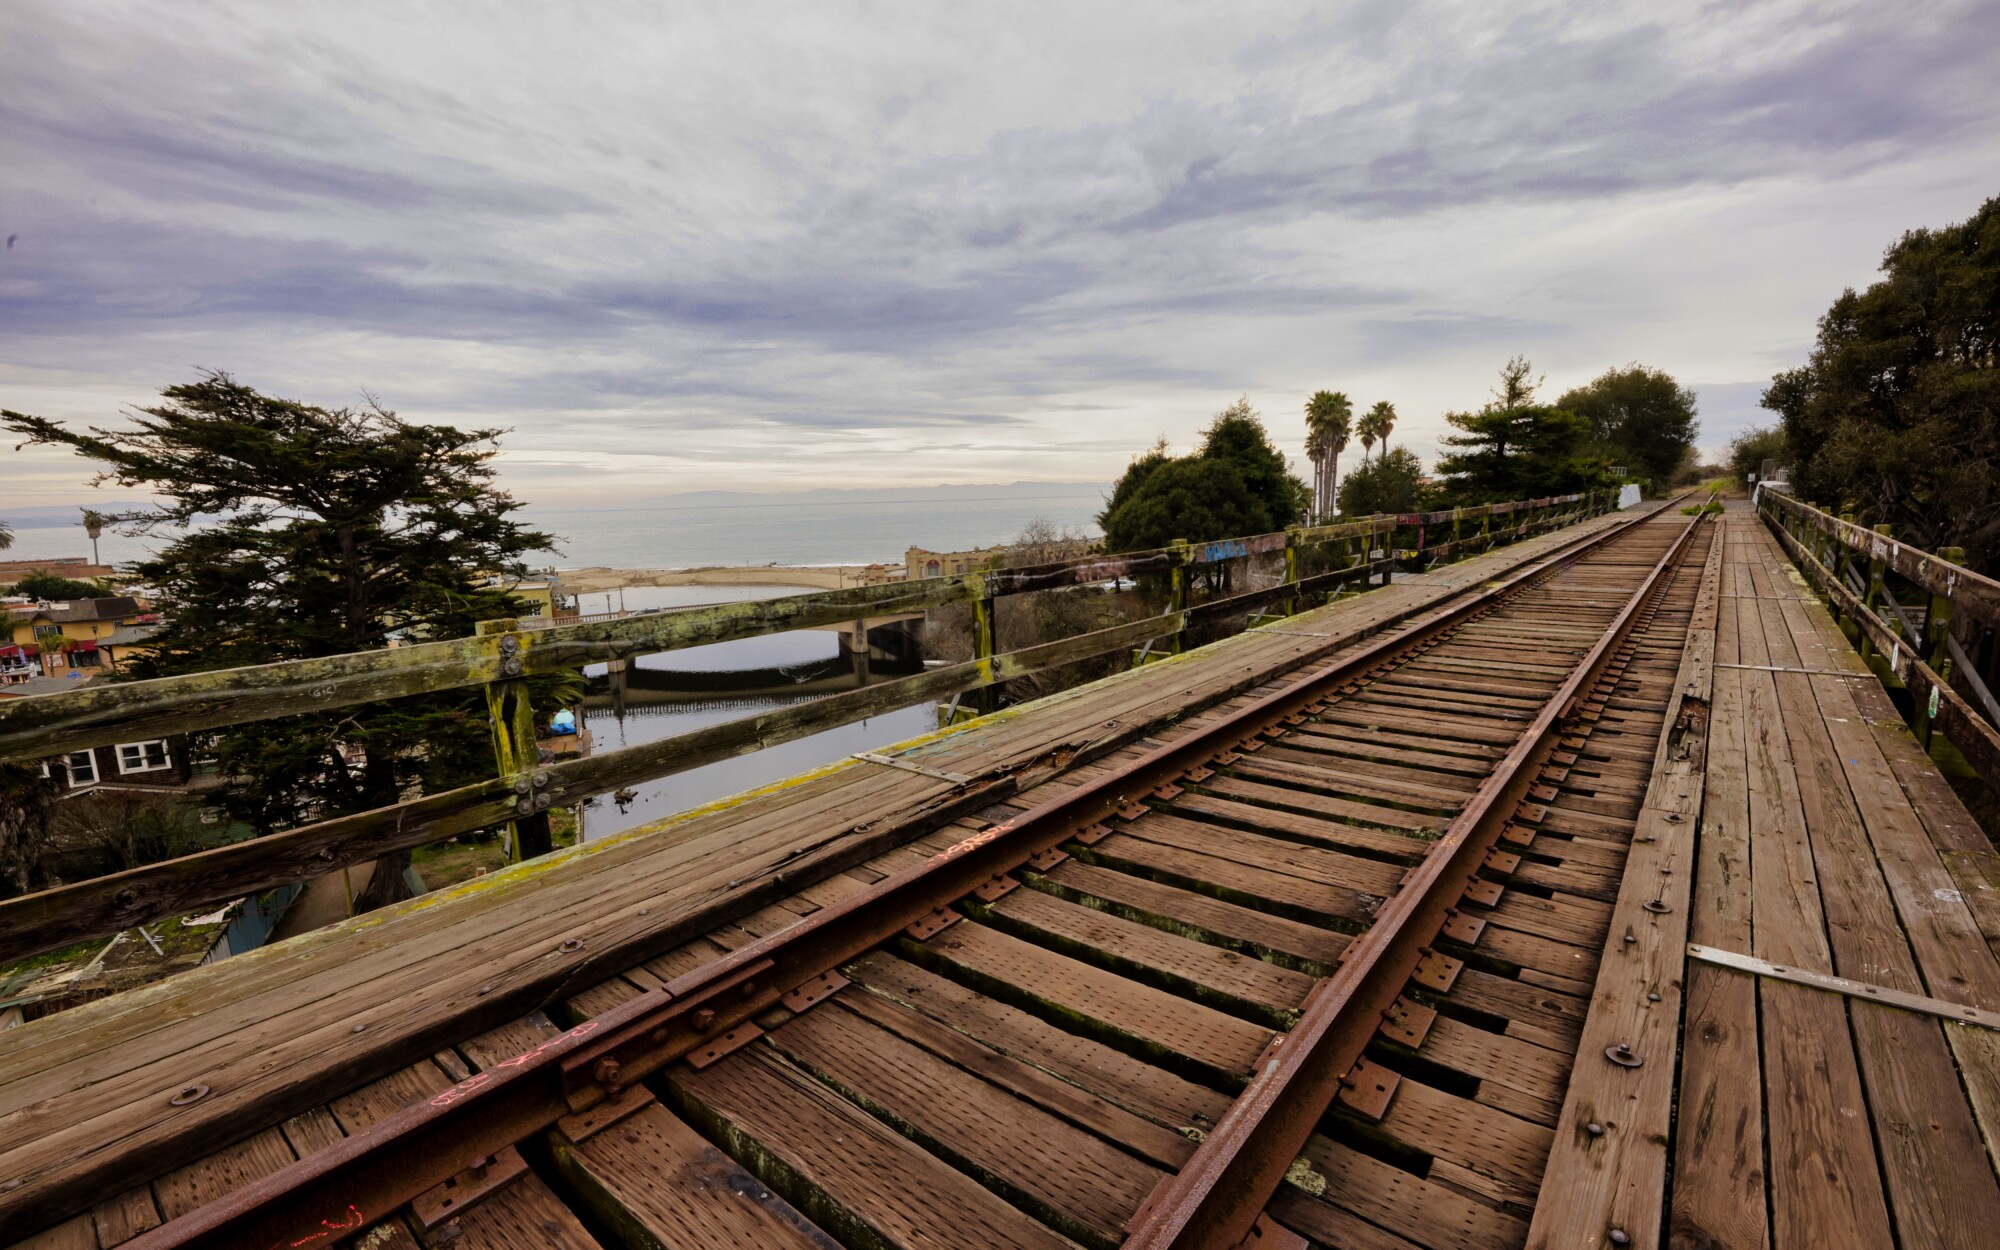 A section of the coastal rail corridor overlooking Capitola in Santa Cruz County.